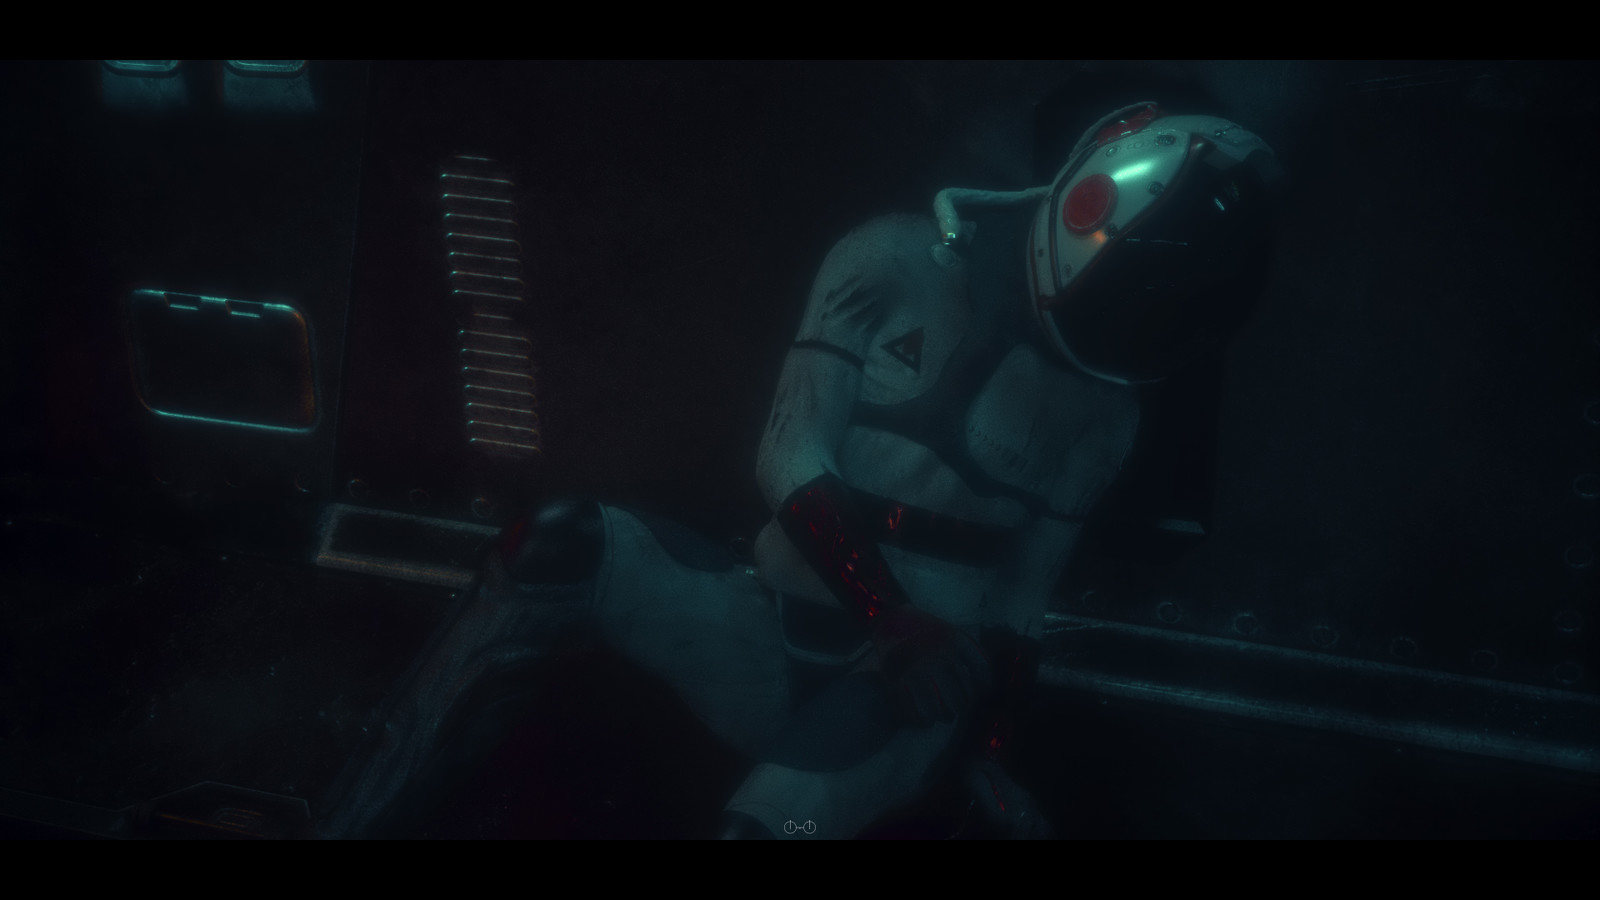 Closer look at the astronaut